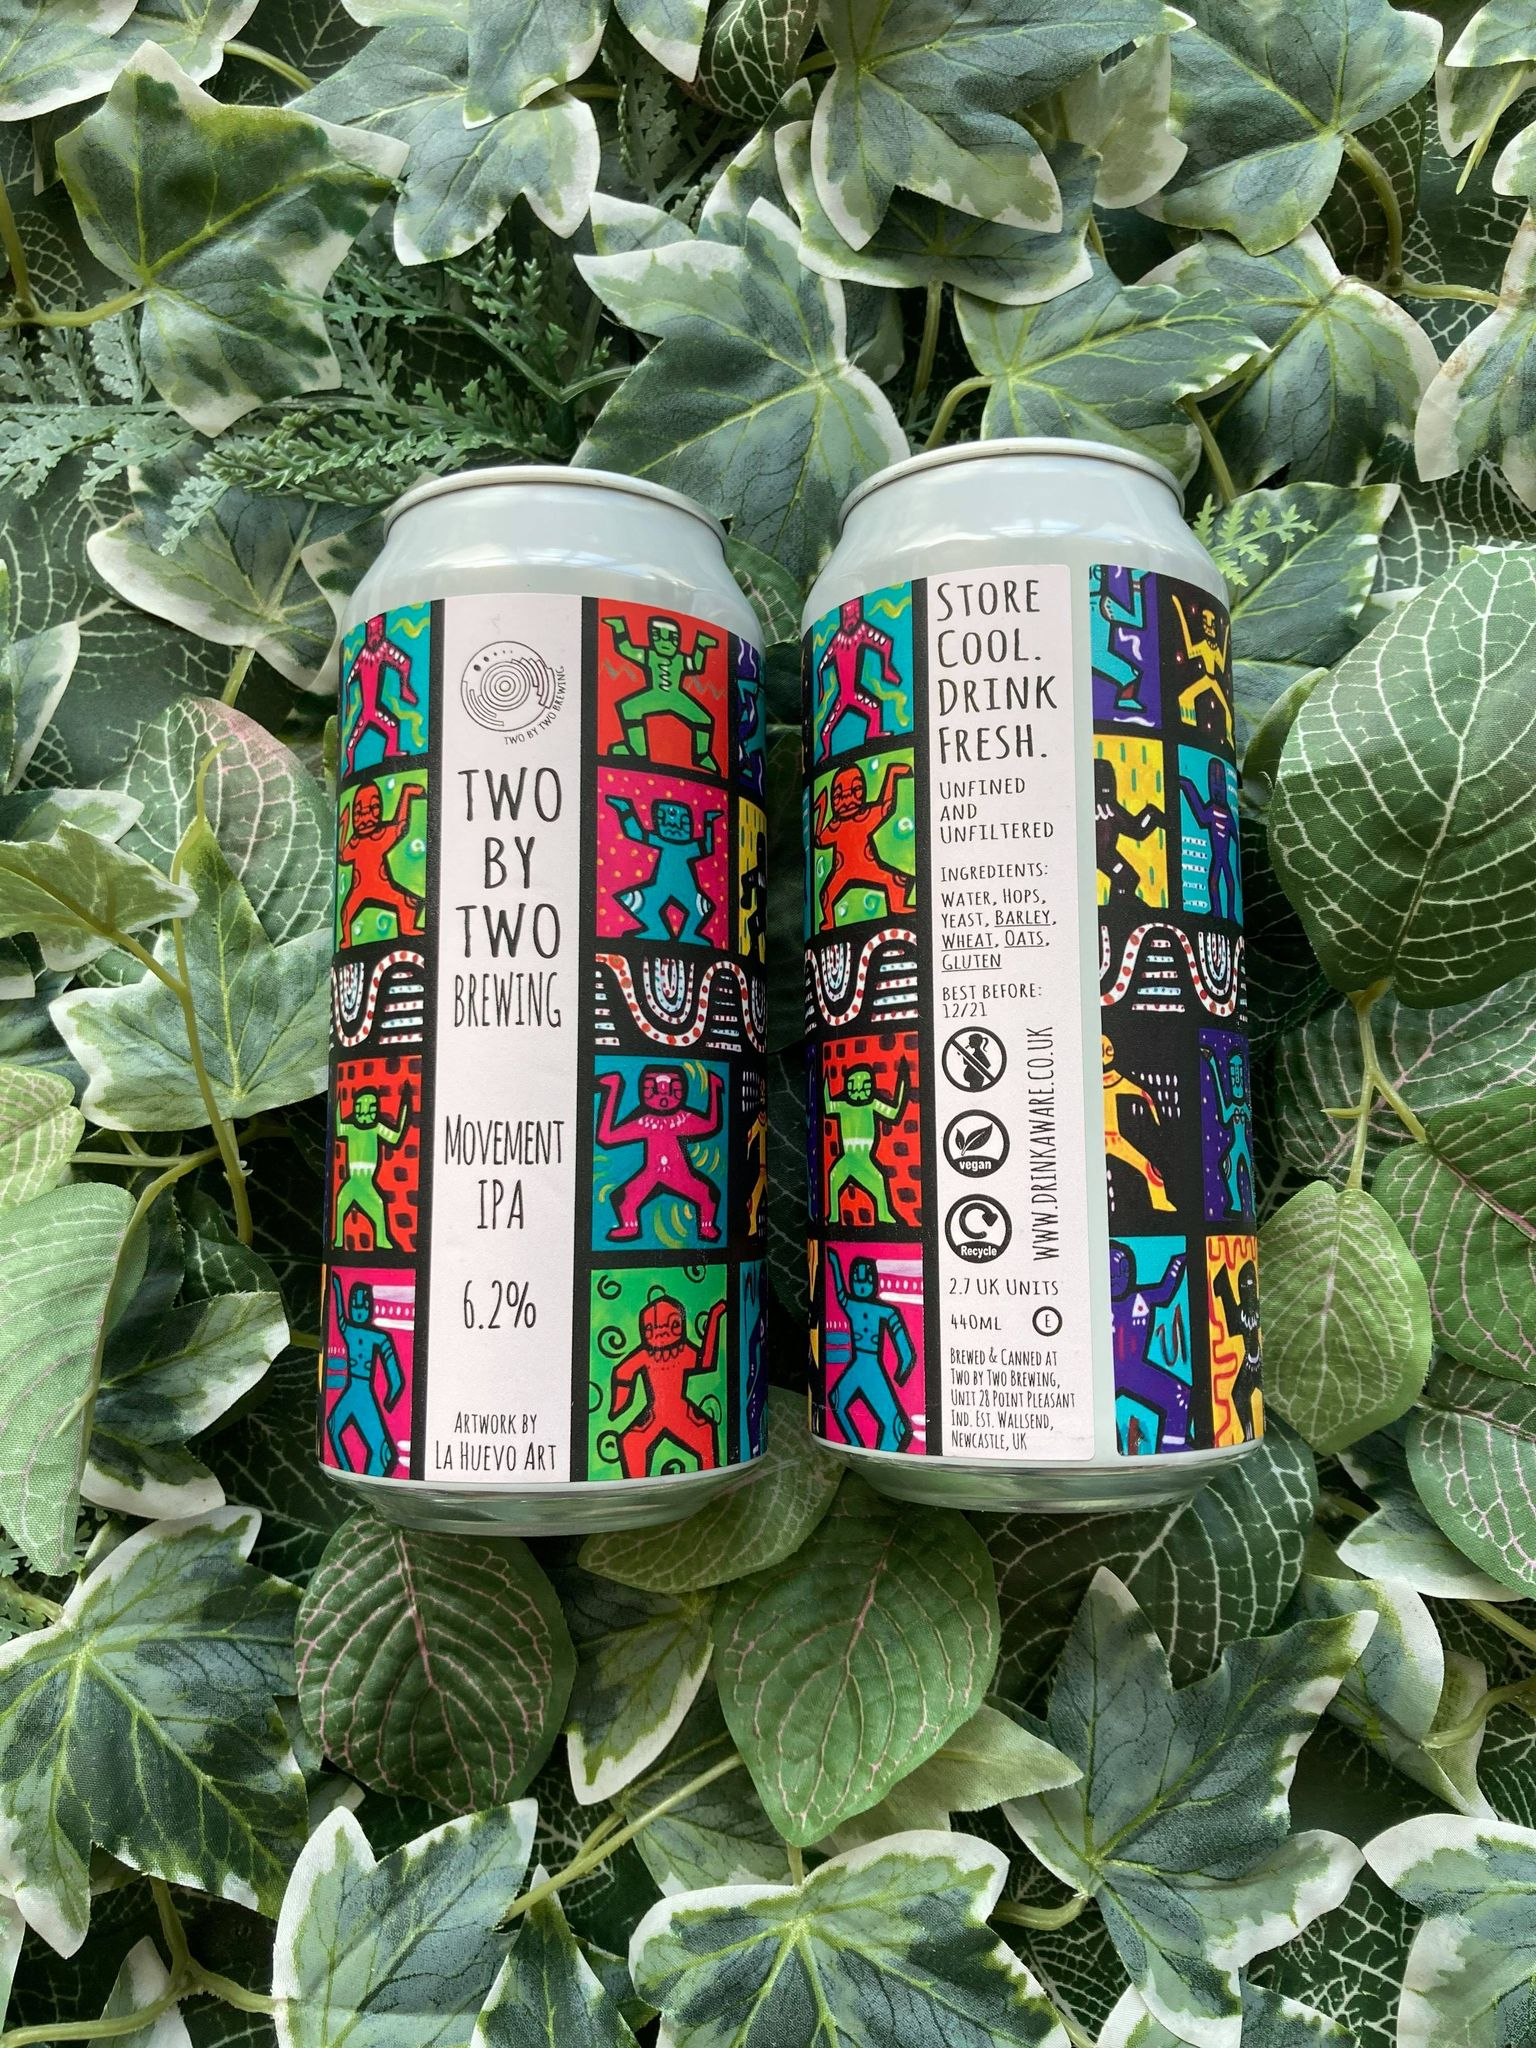 Two By Two - Movement IPA 6.2%